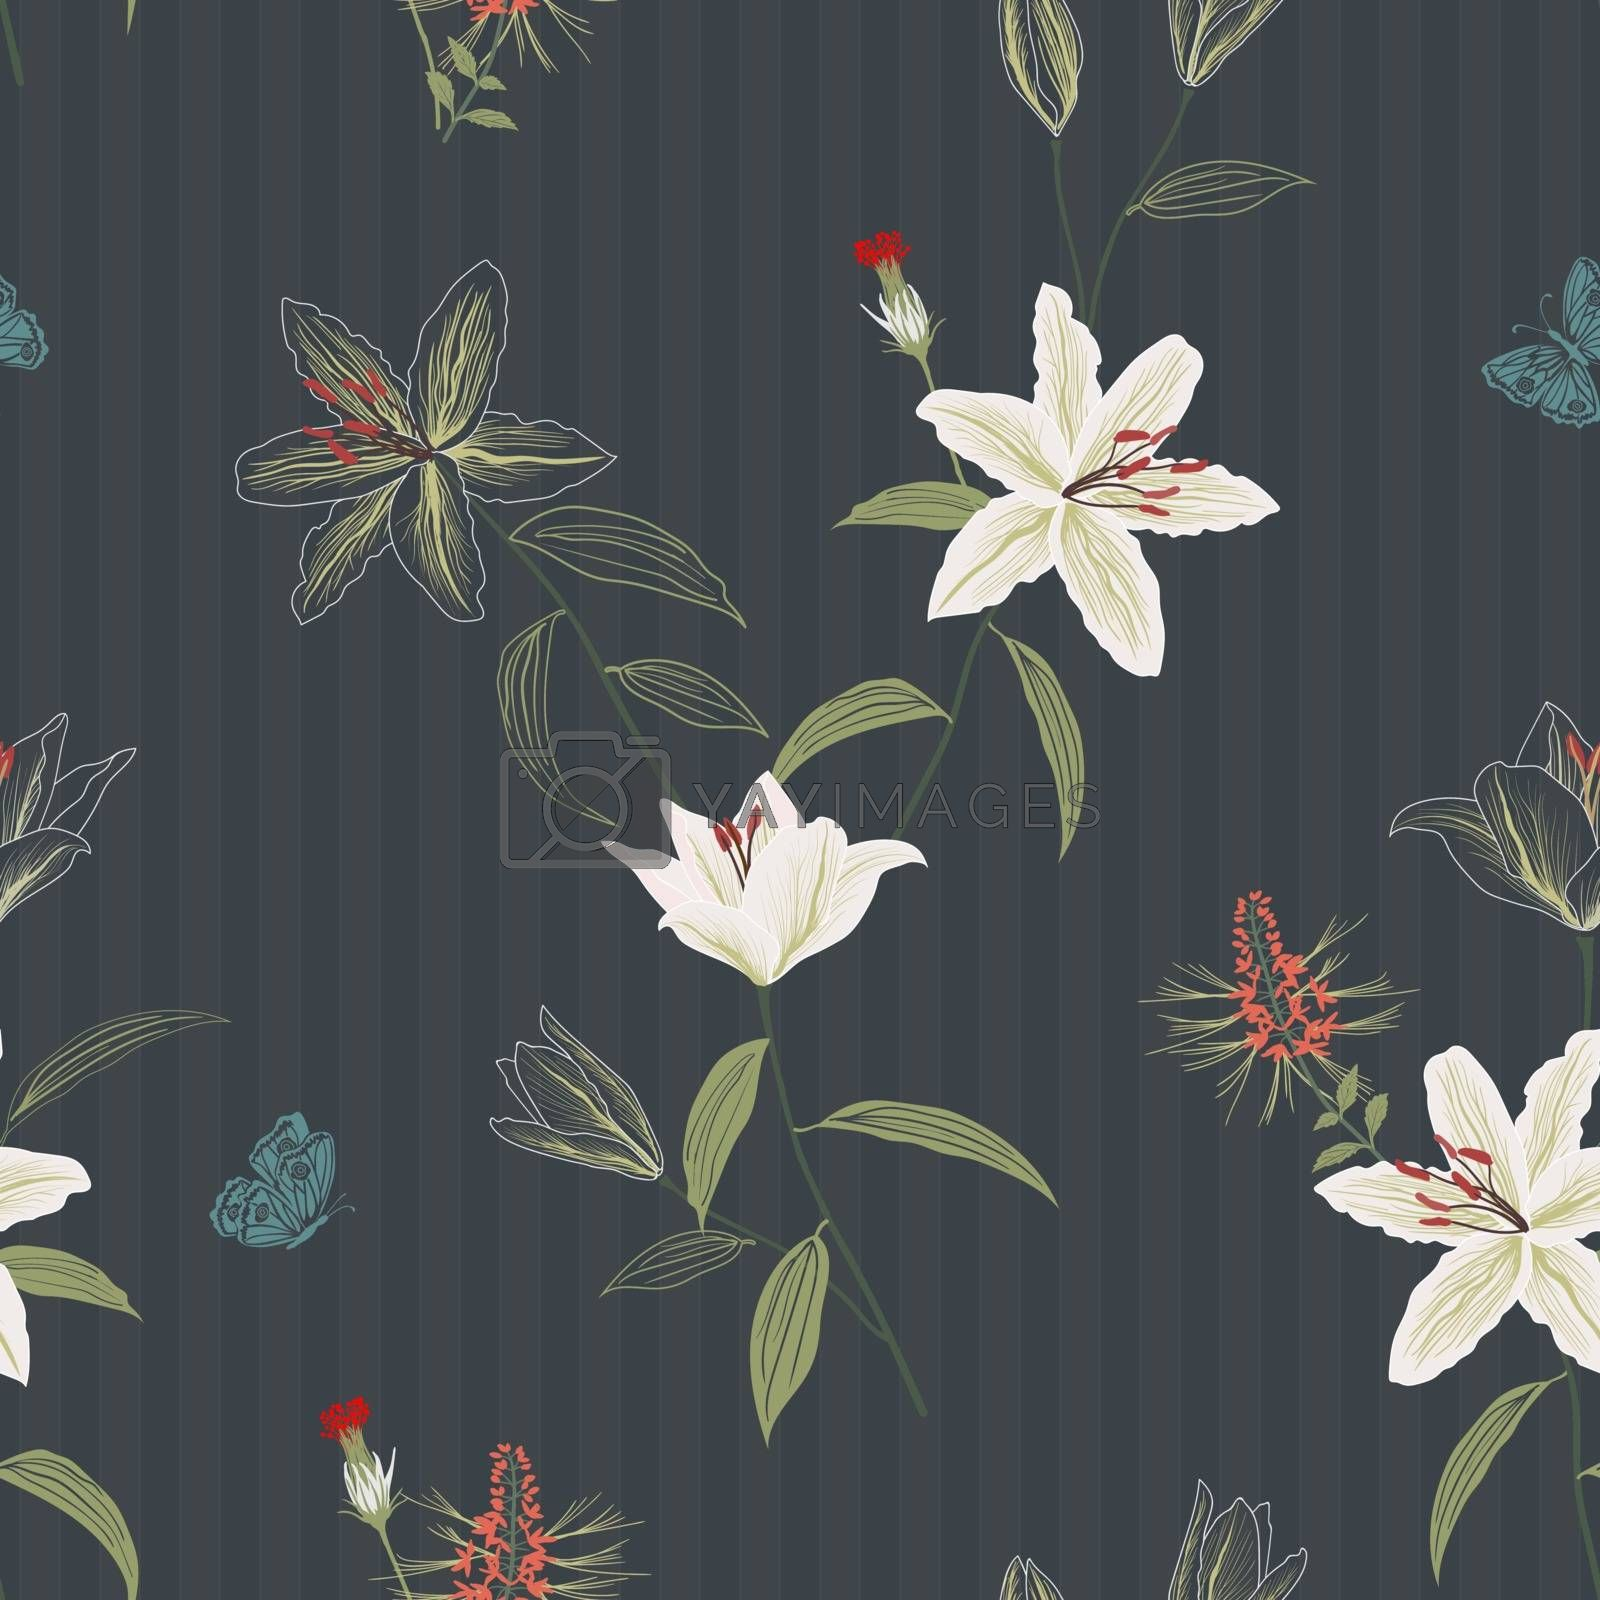 Beautiful hand drawn lily flowers seamless pattern on dark background,for decorative,fabric,textile,print or wallpaper,vector illustration